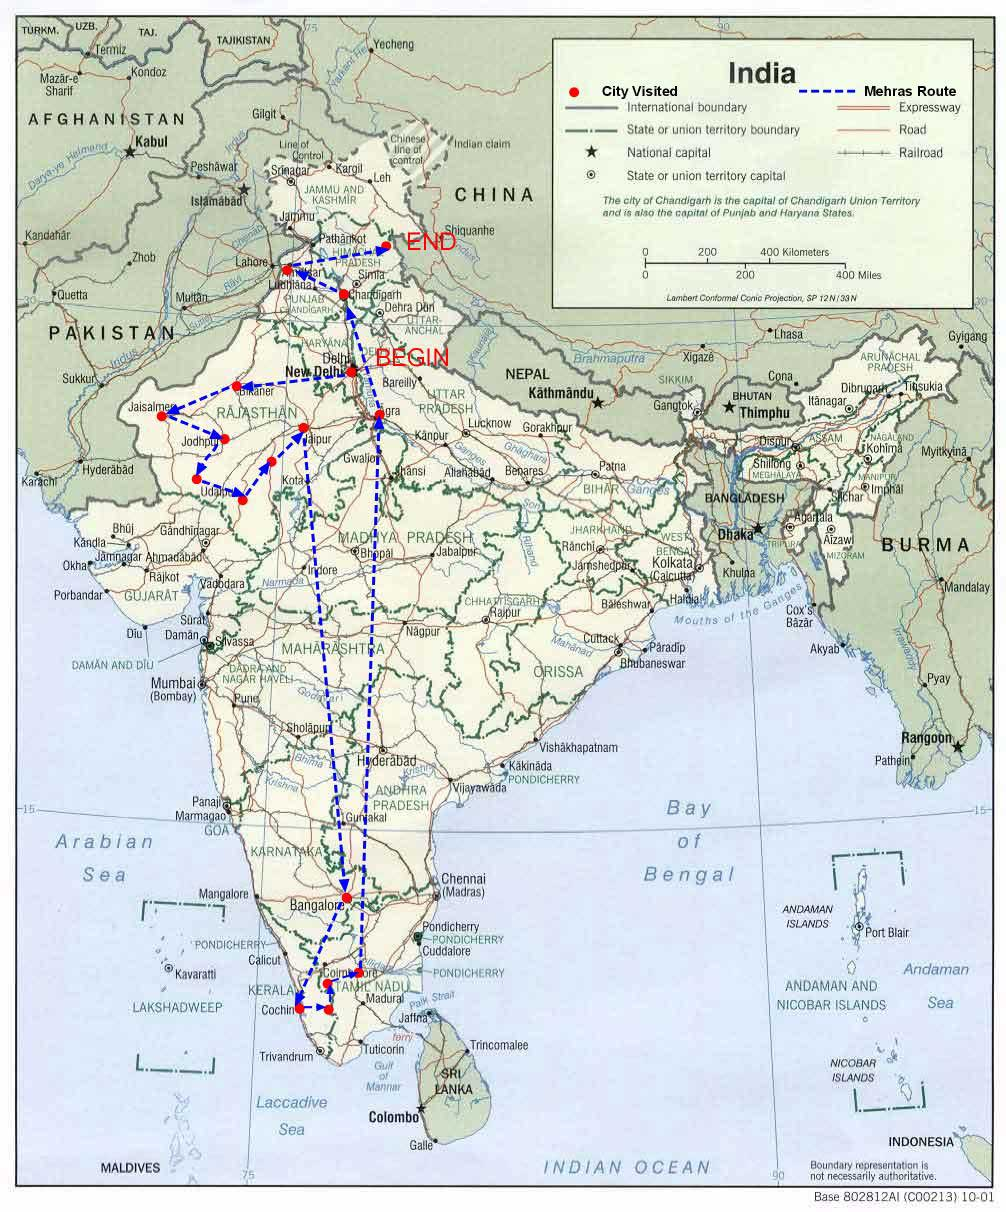 Mehras Indian Route